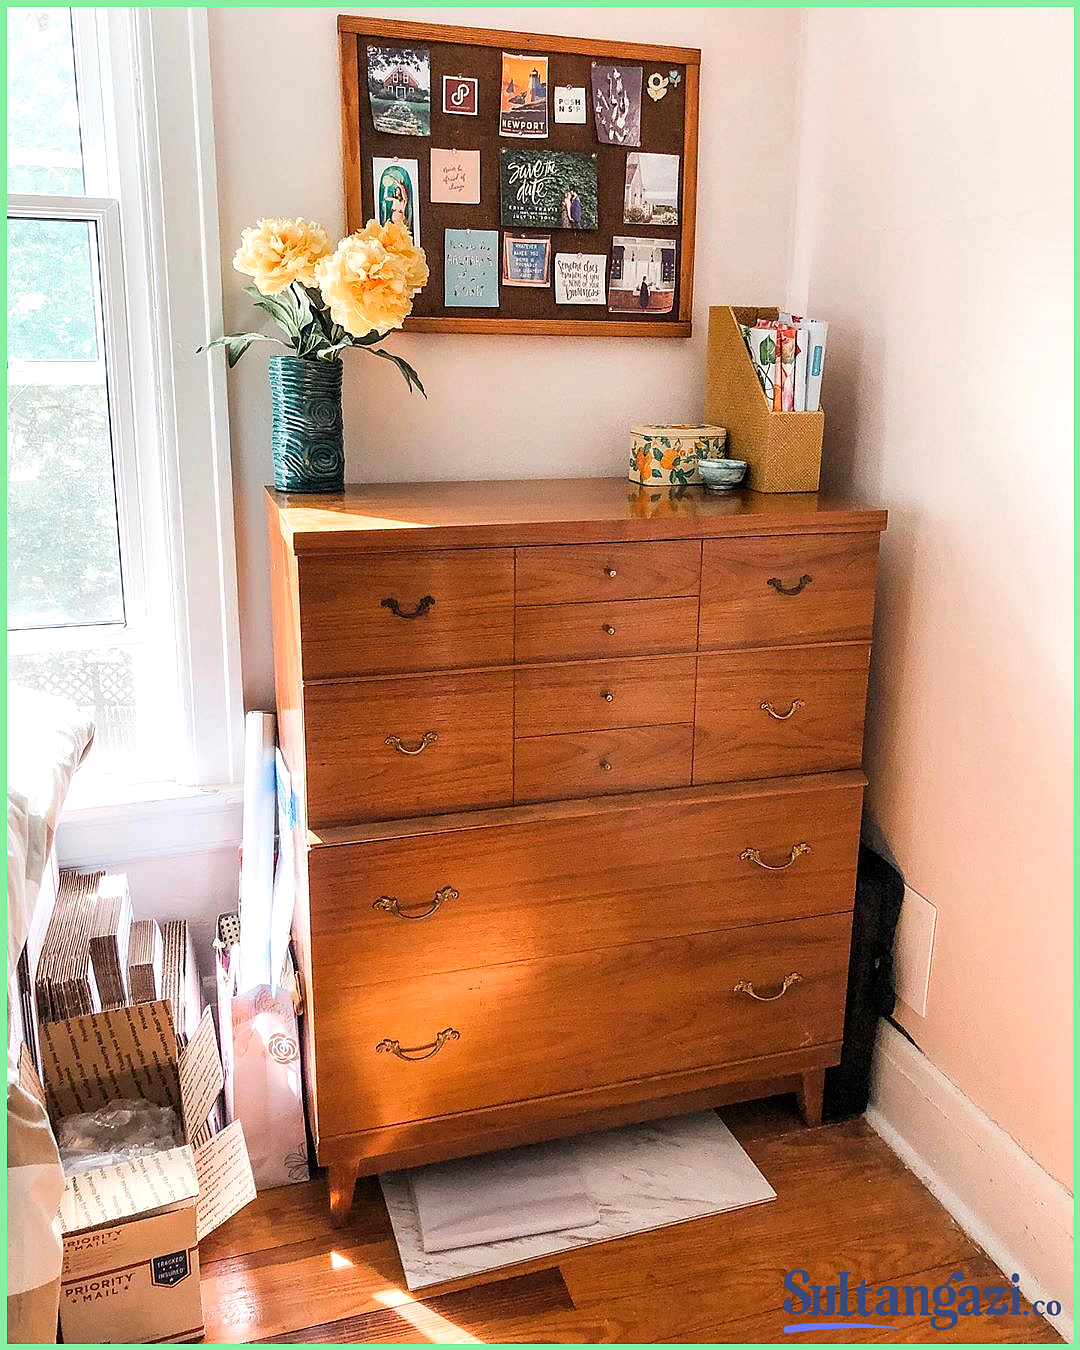 My New Incognito Reseller Workspace My New Incognito Reseller Workspace Erin The Shop On Charles Shoponcharles The In 2020 Mid Century Dresser Work Space Guest Room